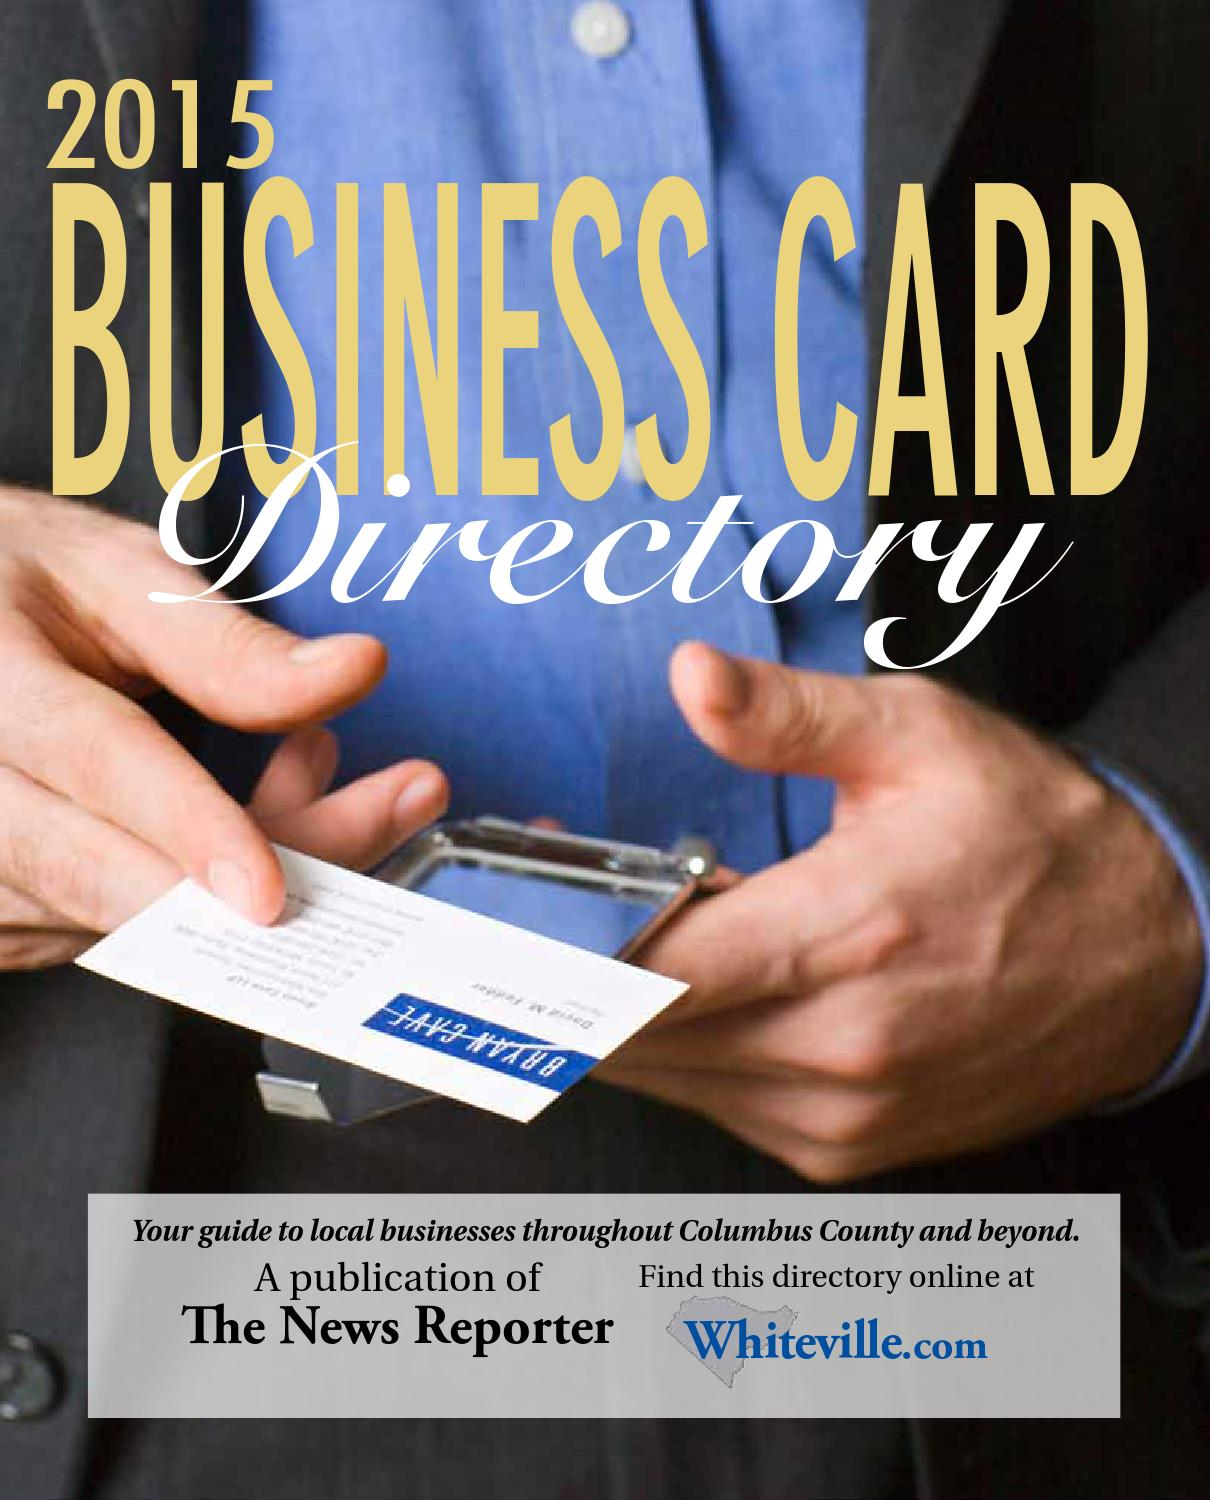 Business Card Directory 2015 by The News Reporter - issuu